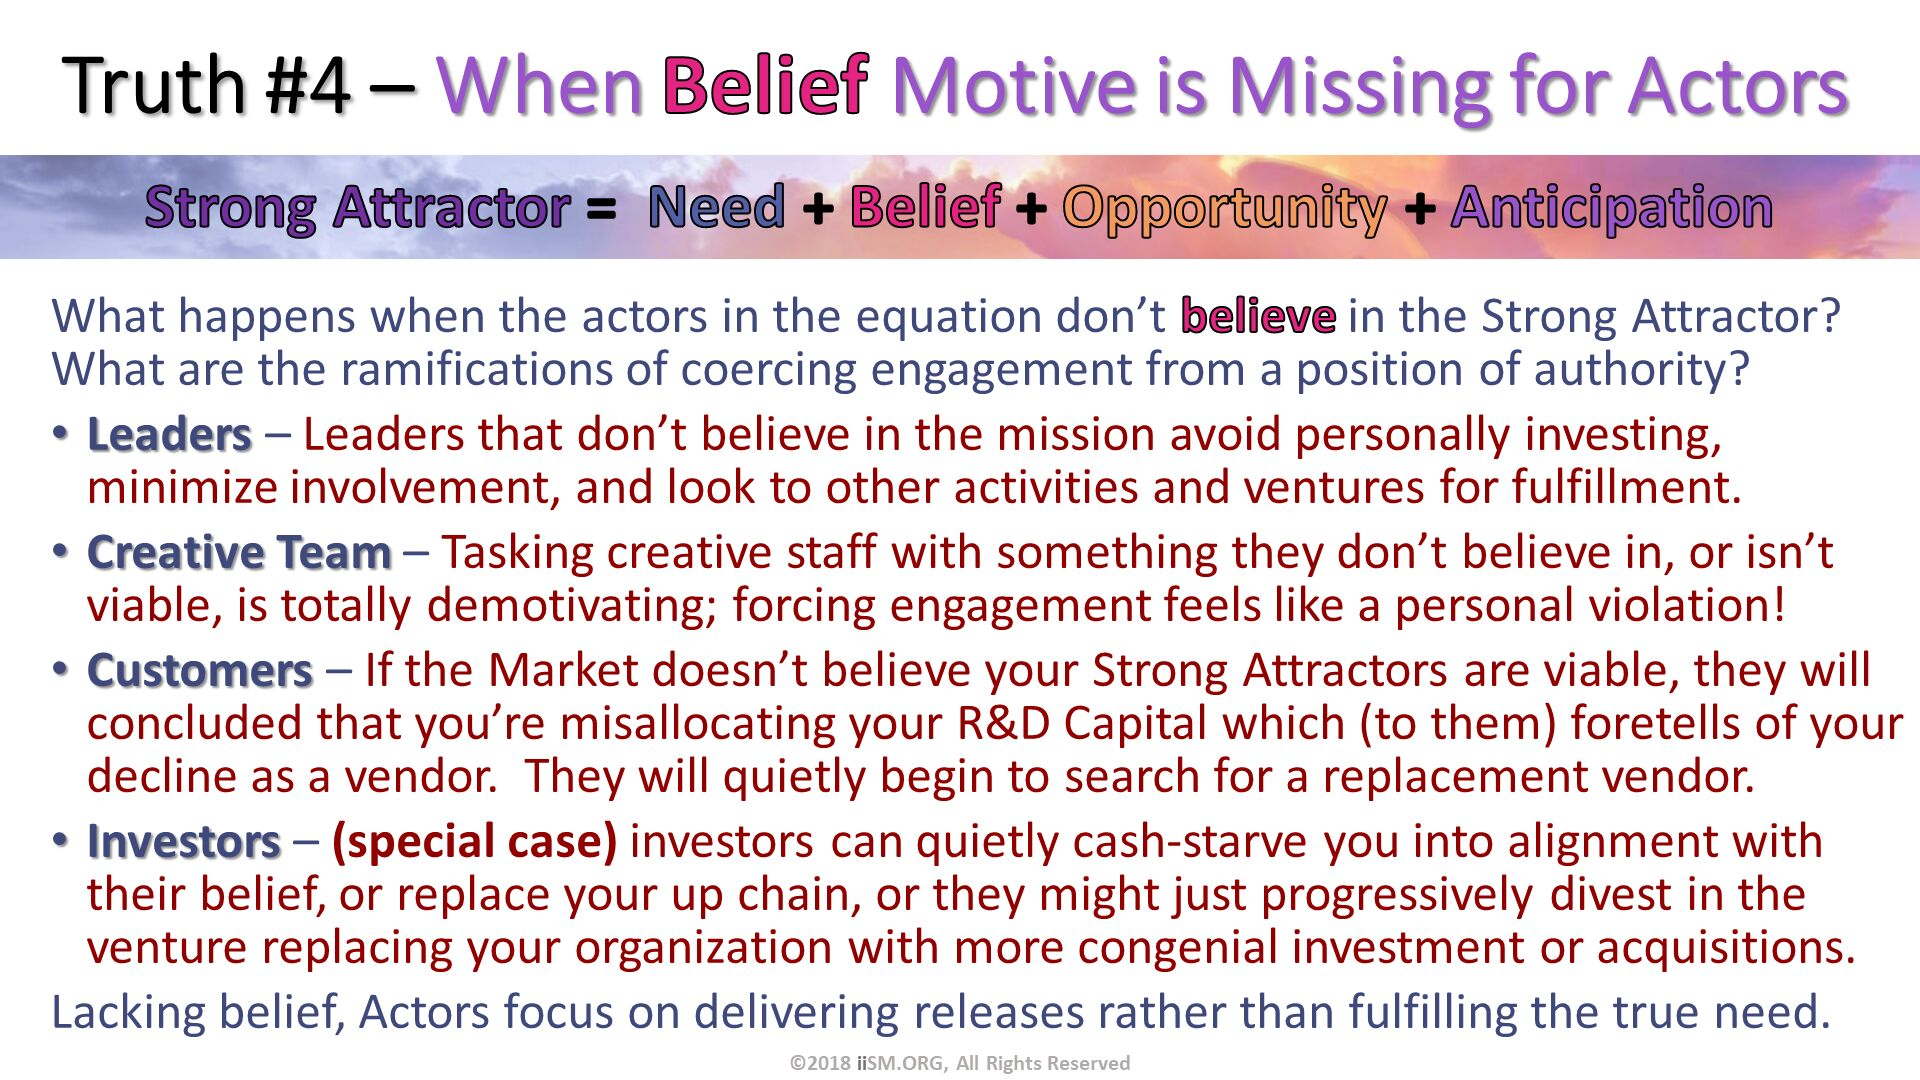 Truth #4 – When Belief Motive is Missing for Actors. What happens when the actors in the equation don't believe in the Strong Attractor?  What are the ramifications of coercing engagement from a position of authority?  Leaders – Leaders that don't believe in the mission avoid personally investing, minimize involvement, and look to other activities and ventures for fulfillment. Creative Team – Tasking creative staff with something they don't believe in, or isn't viable, is totally demotivating; forcing engagement feels like a personal violation! Customers – If the Market doesn't believe your Strong Attractors are viable, they will concluded that you're misallocating your R&D Capital which (to them) foretells of your decline as a vendor.  They will quietly begin to search for a replacement vendor. Investors – (special case) investors can quietly cash-starve you into alignment with their belief, or replace your up chain, or they might just progressively divest in the venture replacing your organization with more congenial investment or acquisitions. Lacking belief, Actors focus on delivering releases rather than fulfilling the true need. ©2018 iiSM.ORG, All Rights Reserved.